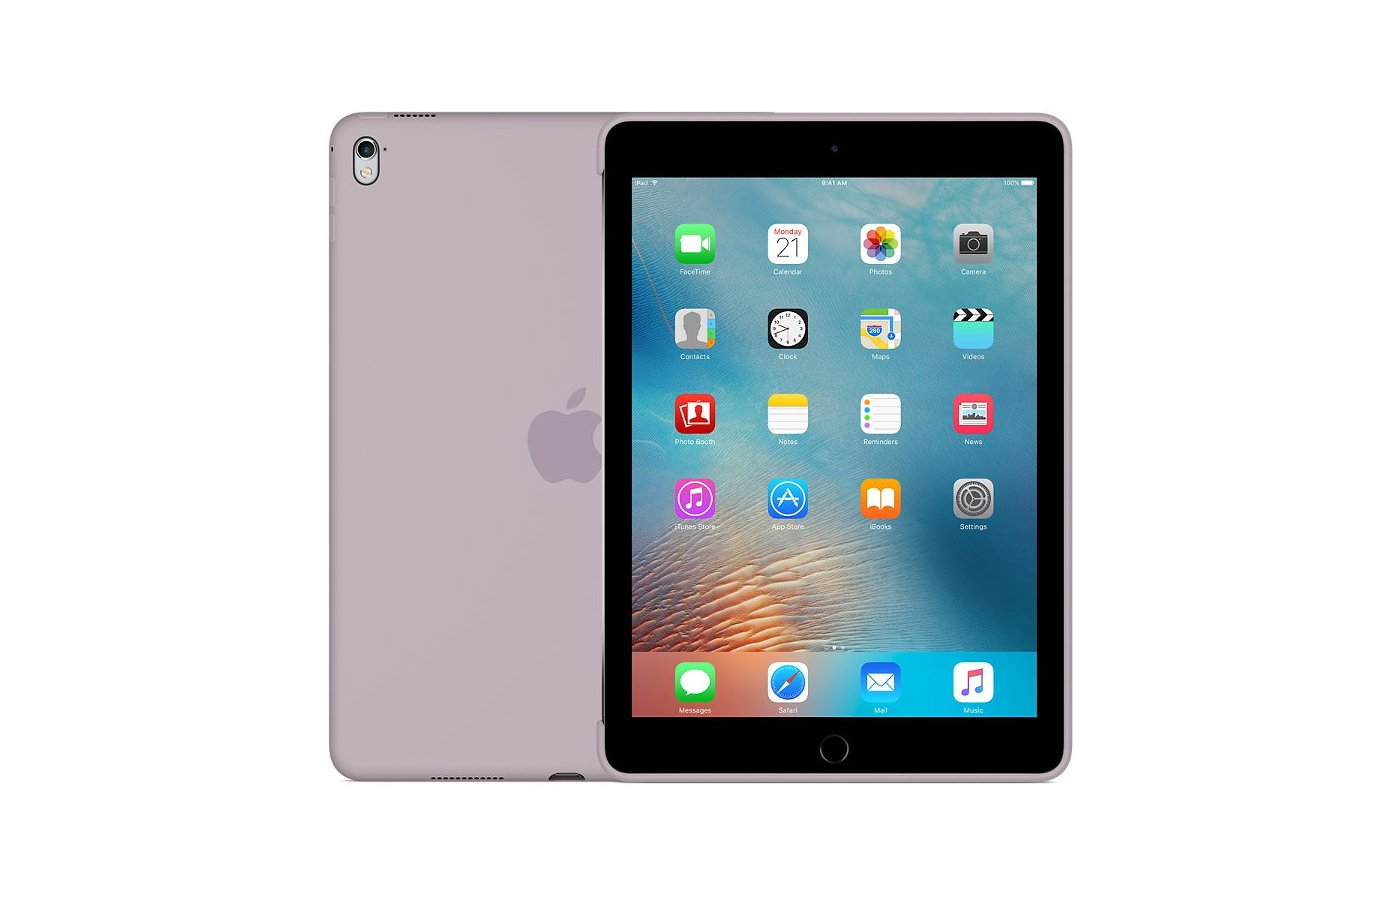 Чехол для планшетного ПК Apple Silicone Case iPad Pro 9.7 - Lavender (MM272ZM/A)